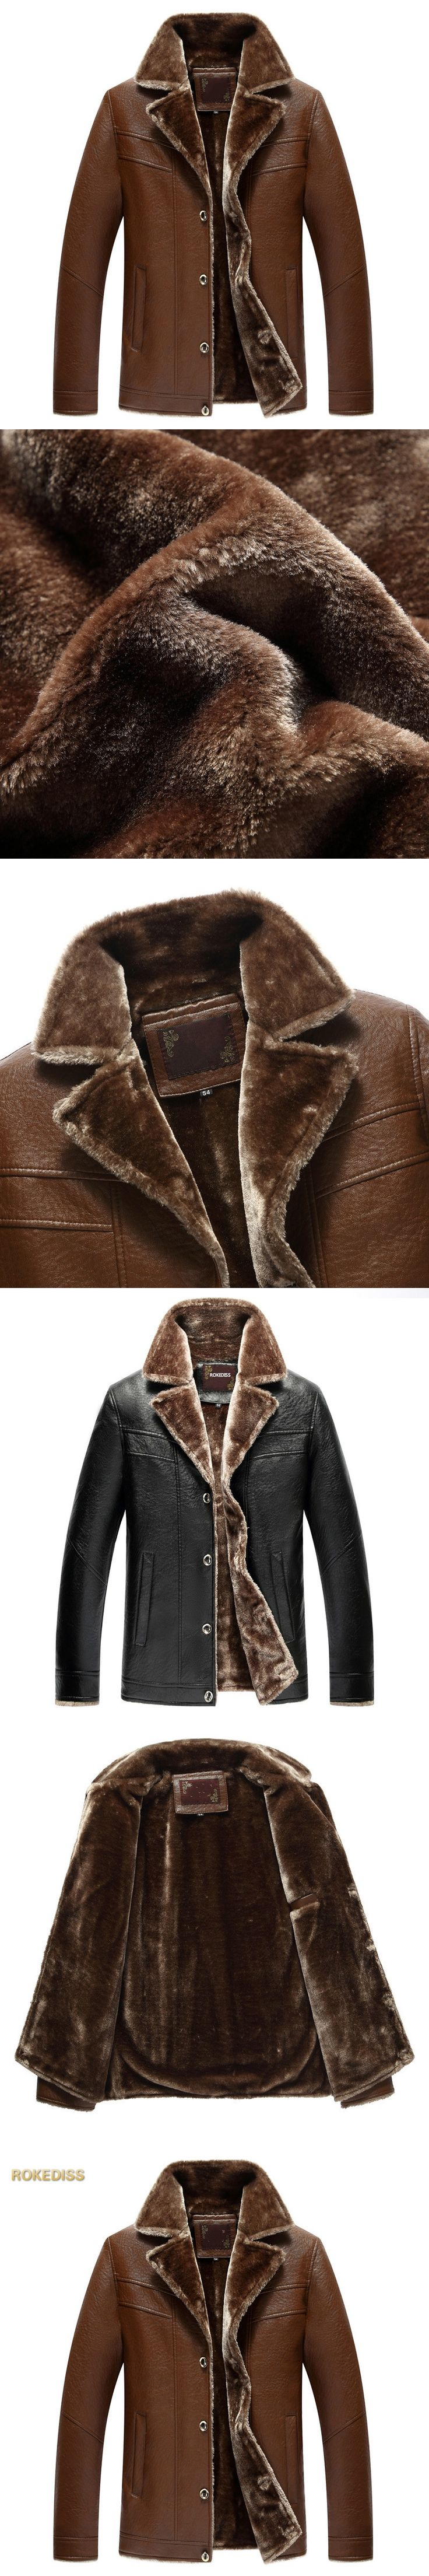 2017 Winter male Leather Jacket Men PU Warm Mens Leather Motorcycle Biker Jackets Standing Collar Coat Outdoors parka